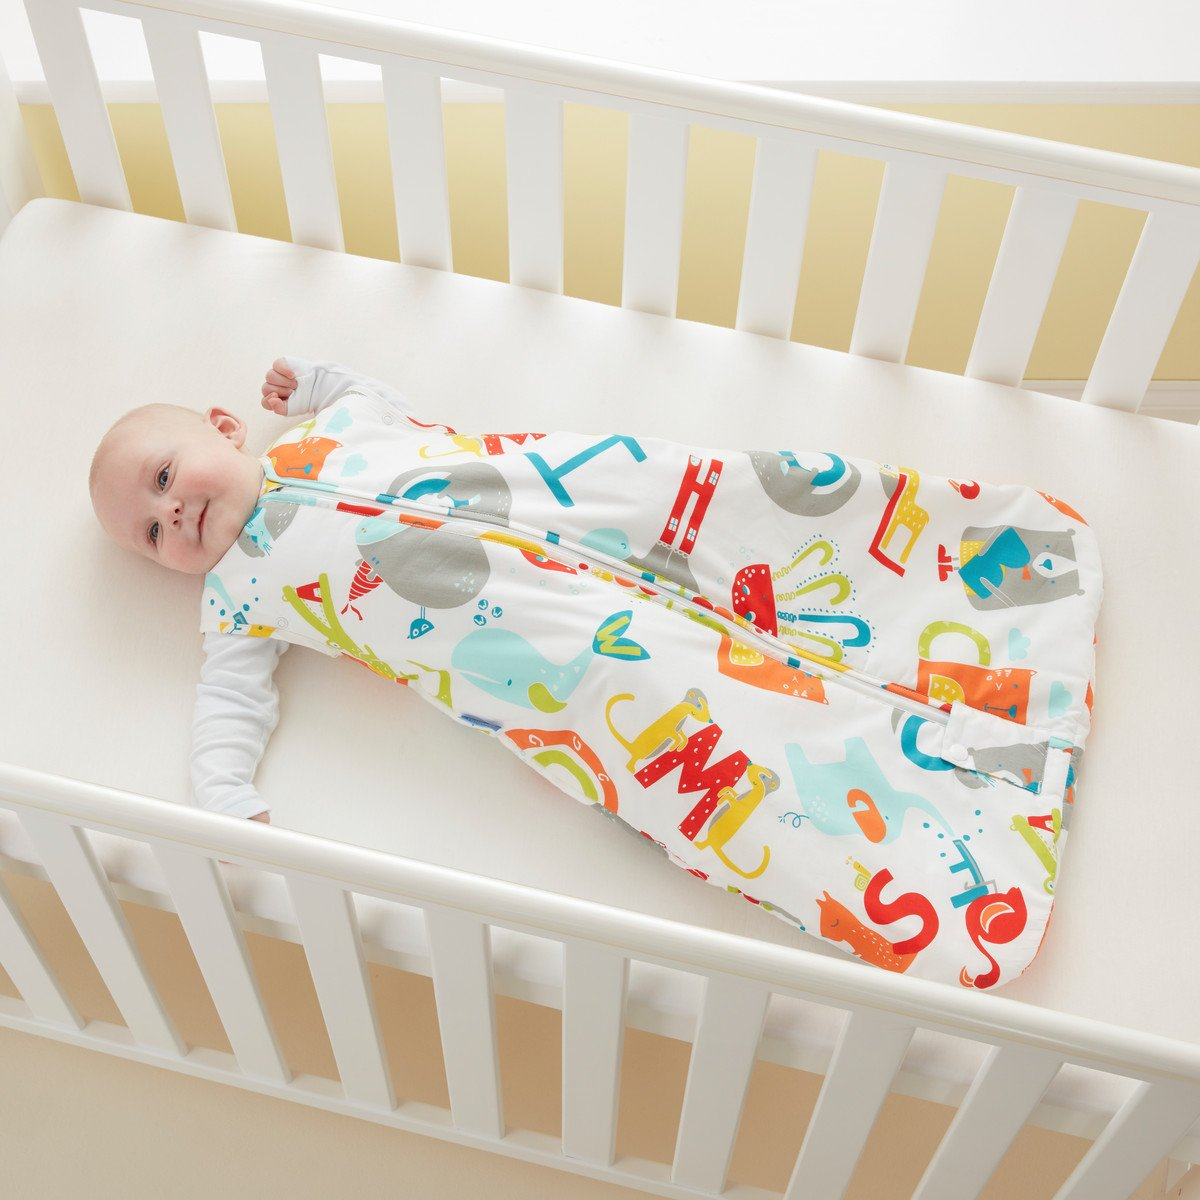 Grobag Travel Baby Sleeping Bag - E is for Elephant 2.5 Tog (18-36 Months) by grobag (Image #6)